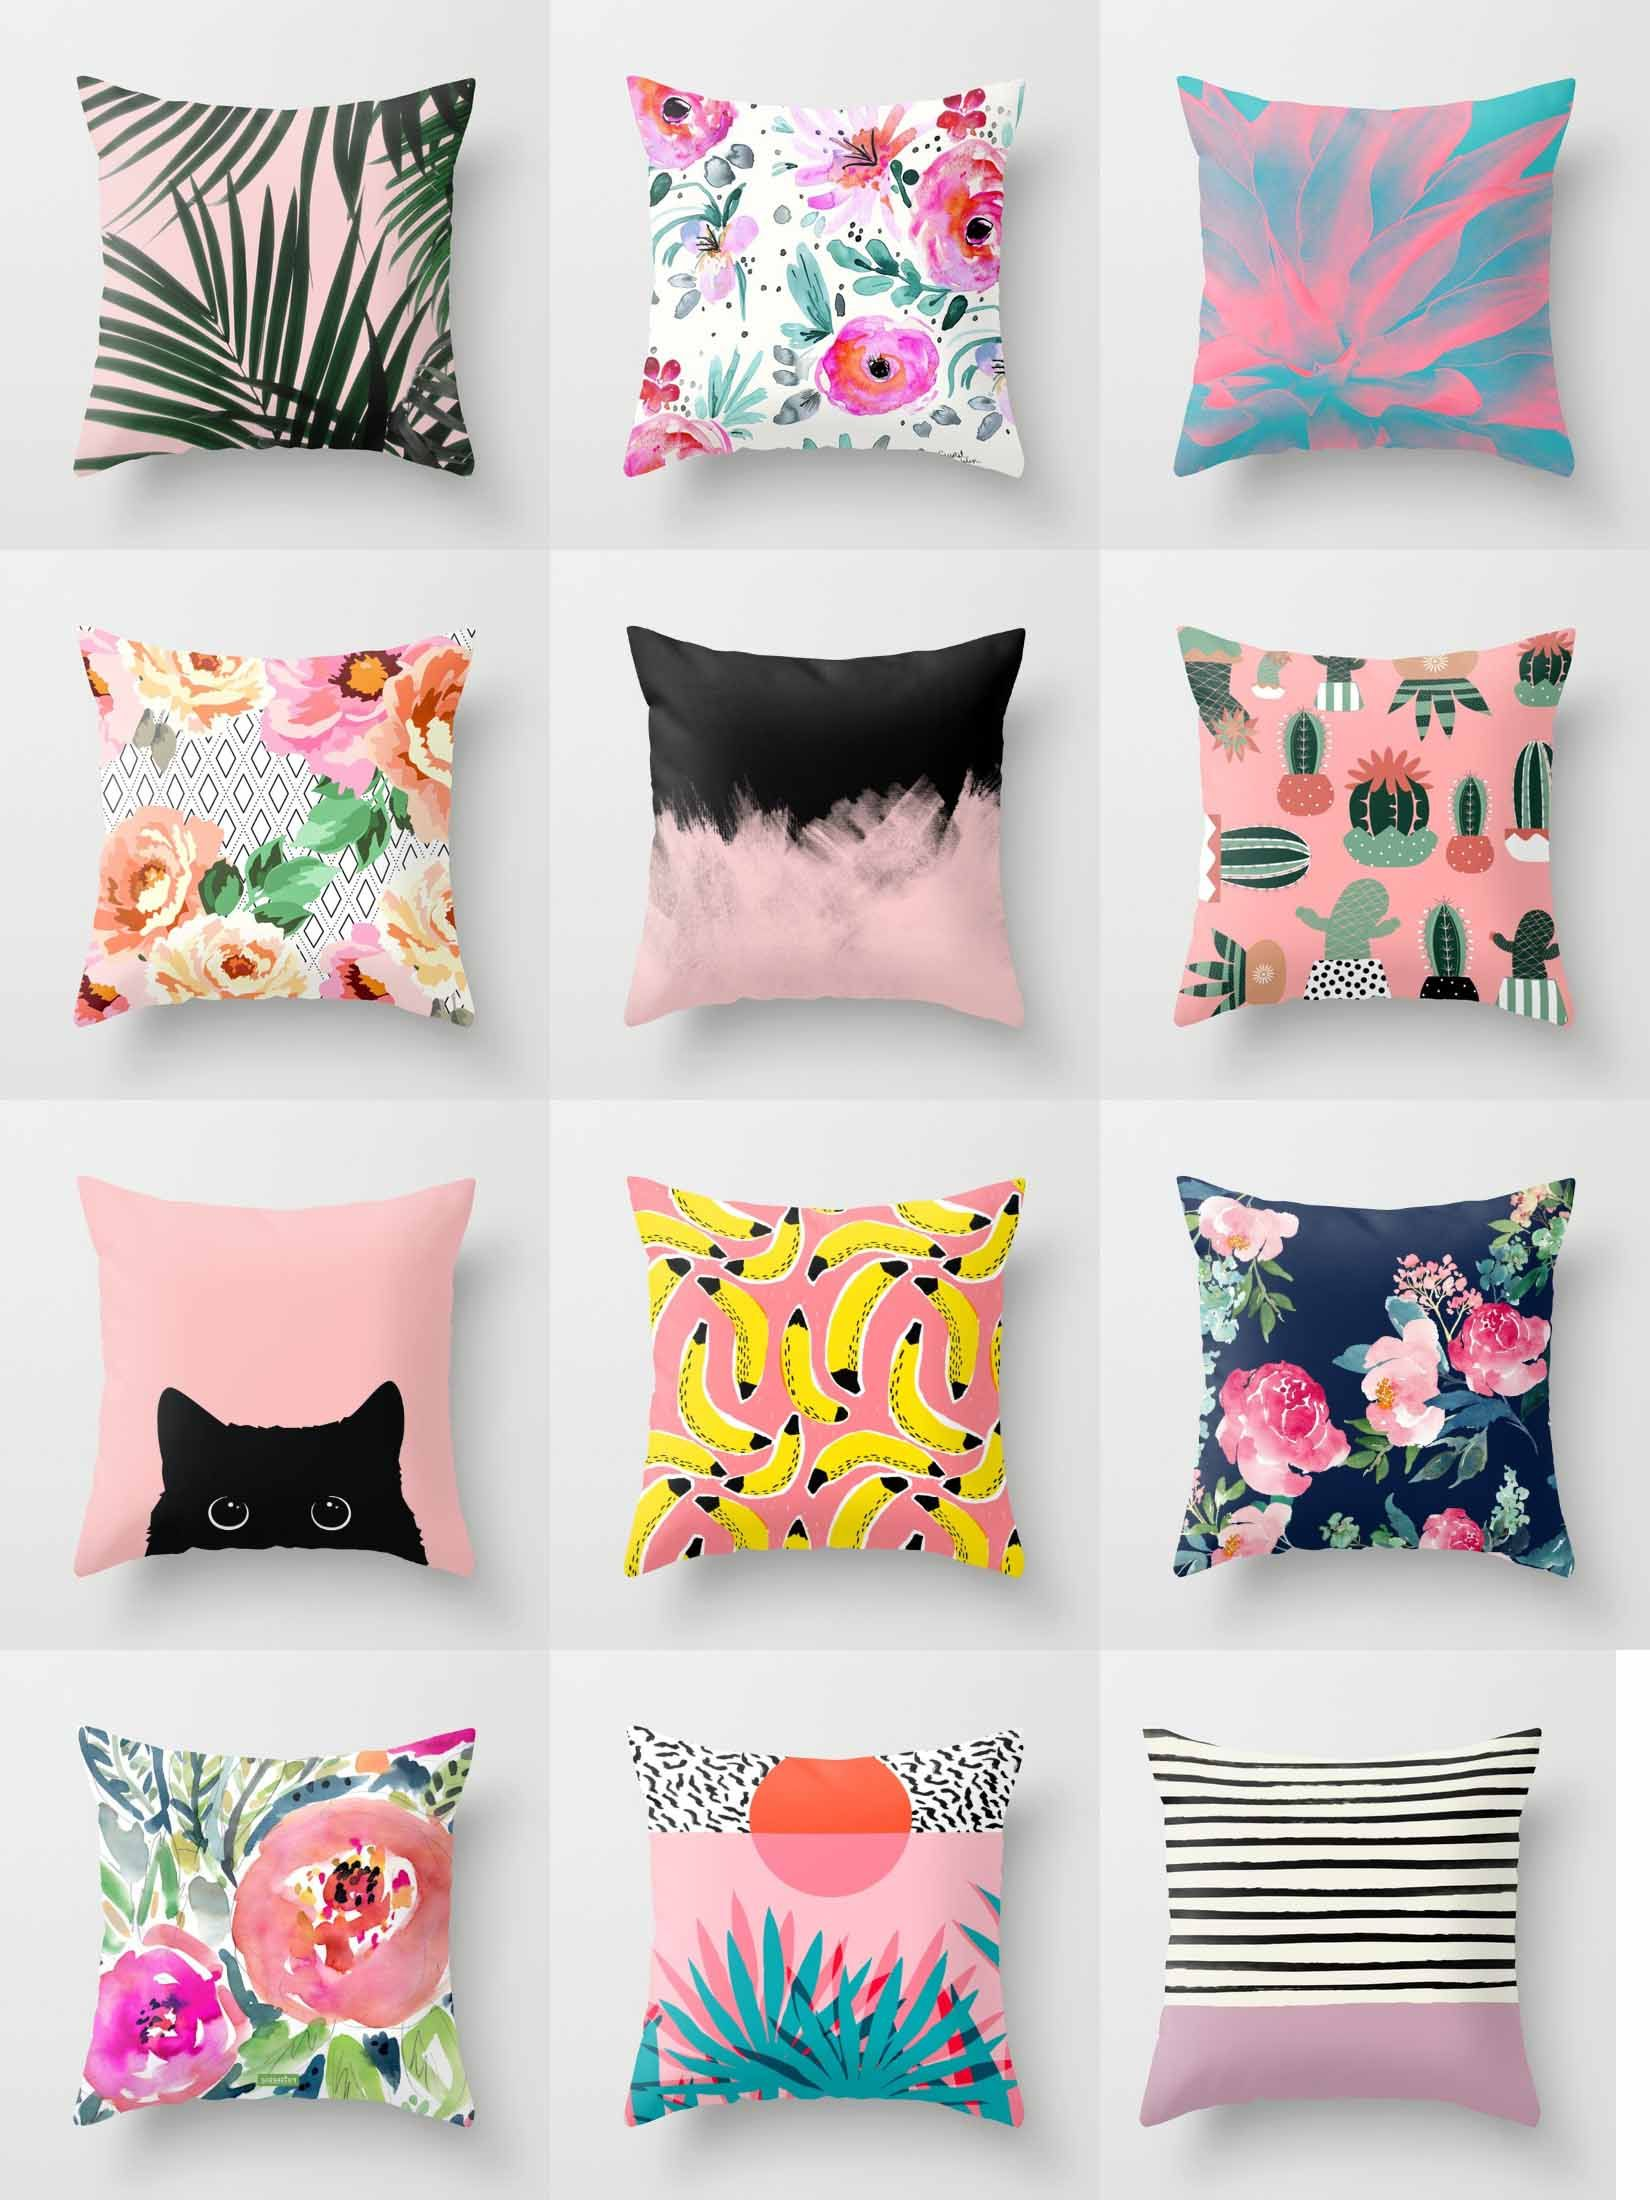 Sims 4 Bettdecken Society6 Pink Throw Pillows Society6 Is Home To Hundreds Of